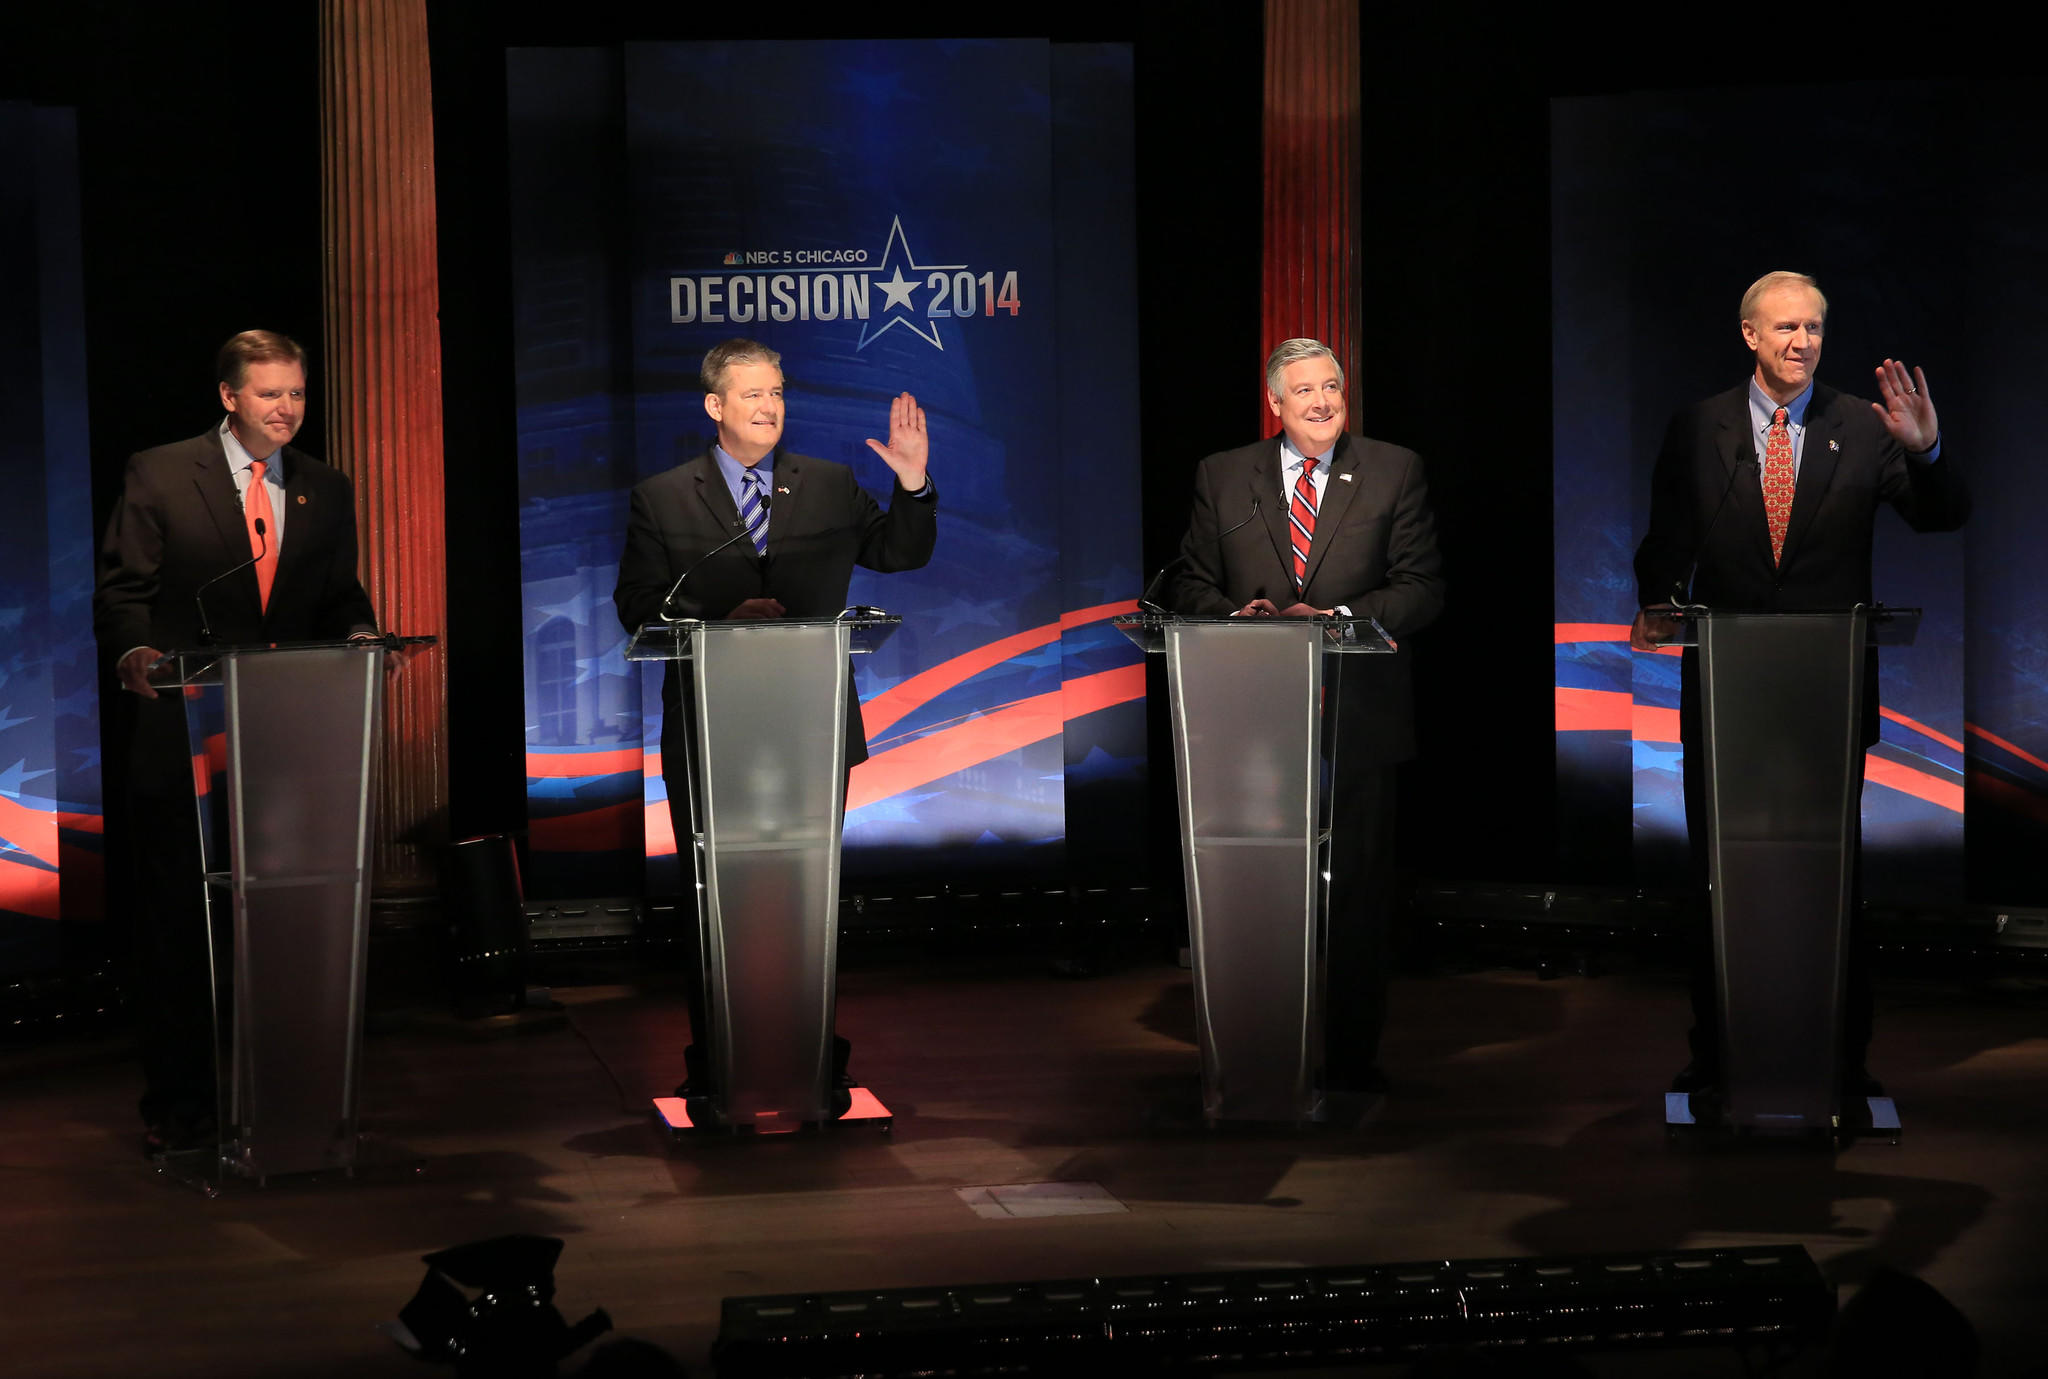 Republican candidates for governor of Illinois, from left to right, Bill Brady, Dan Rutherford, Kirk Dillard, and Bruce Rauner prepare to speak a a public form at the David and Reva Logan Center for the Arts at the University of Chicago in Chicago on Tuesday.